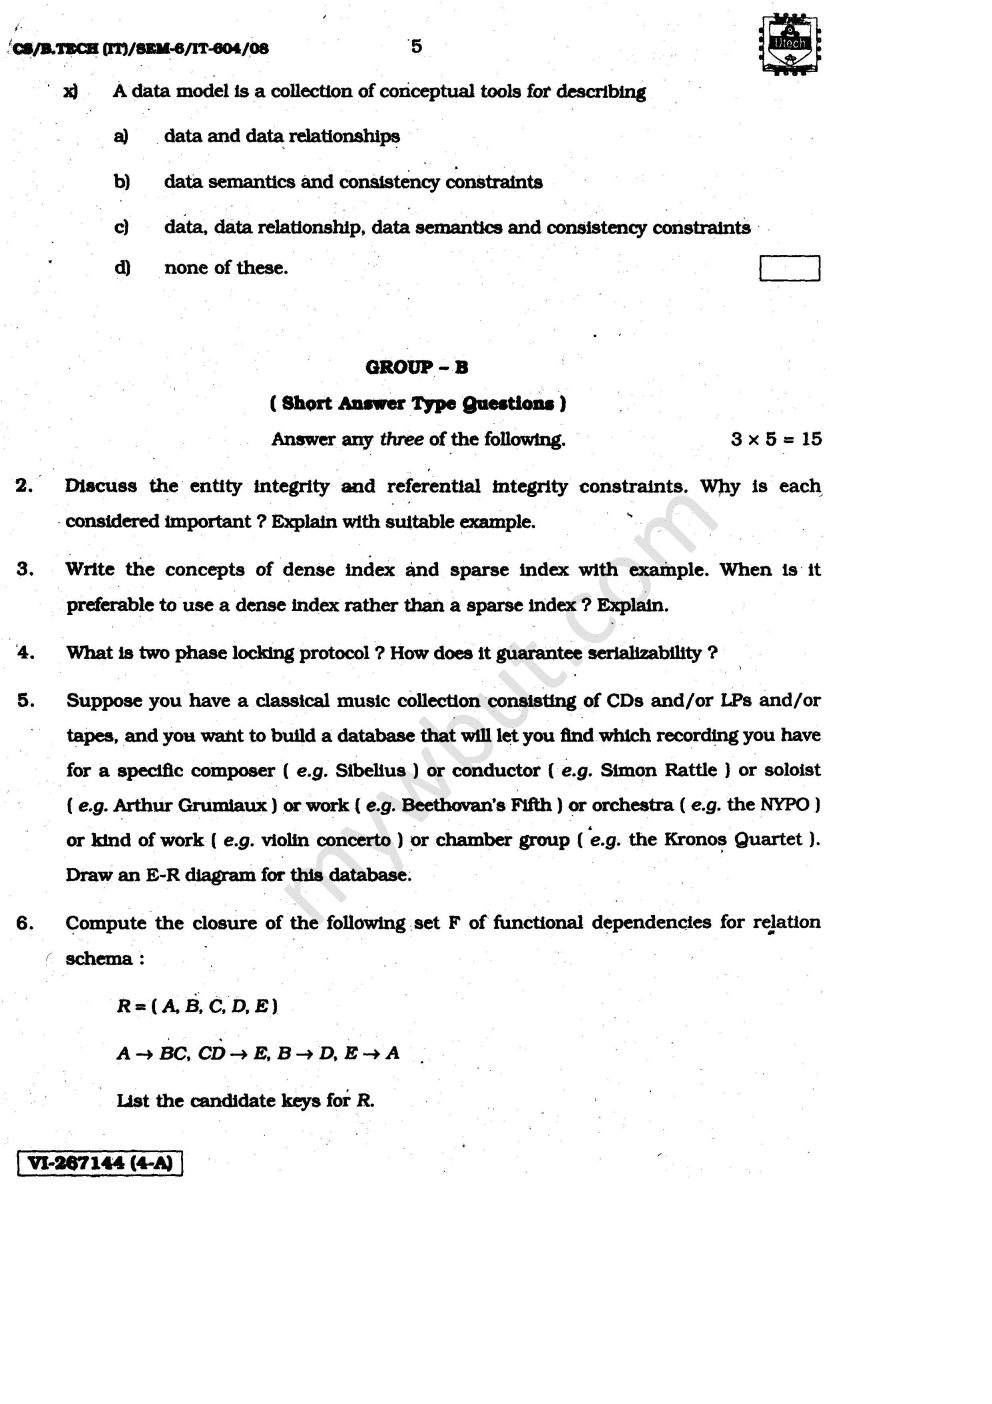 Past year question papers of WBUT IT 6th Semester DBMS (IT